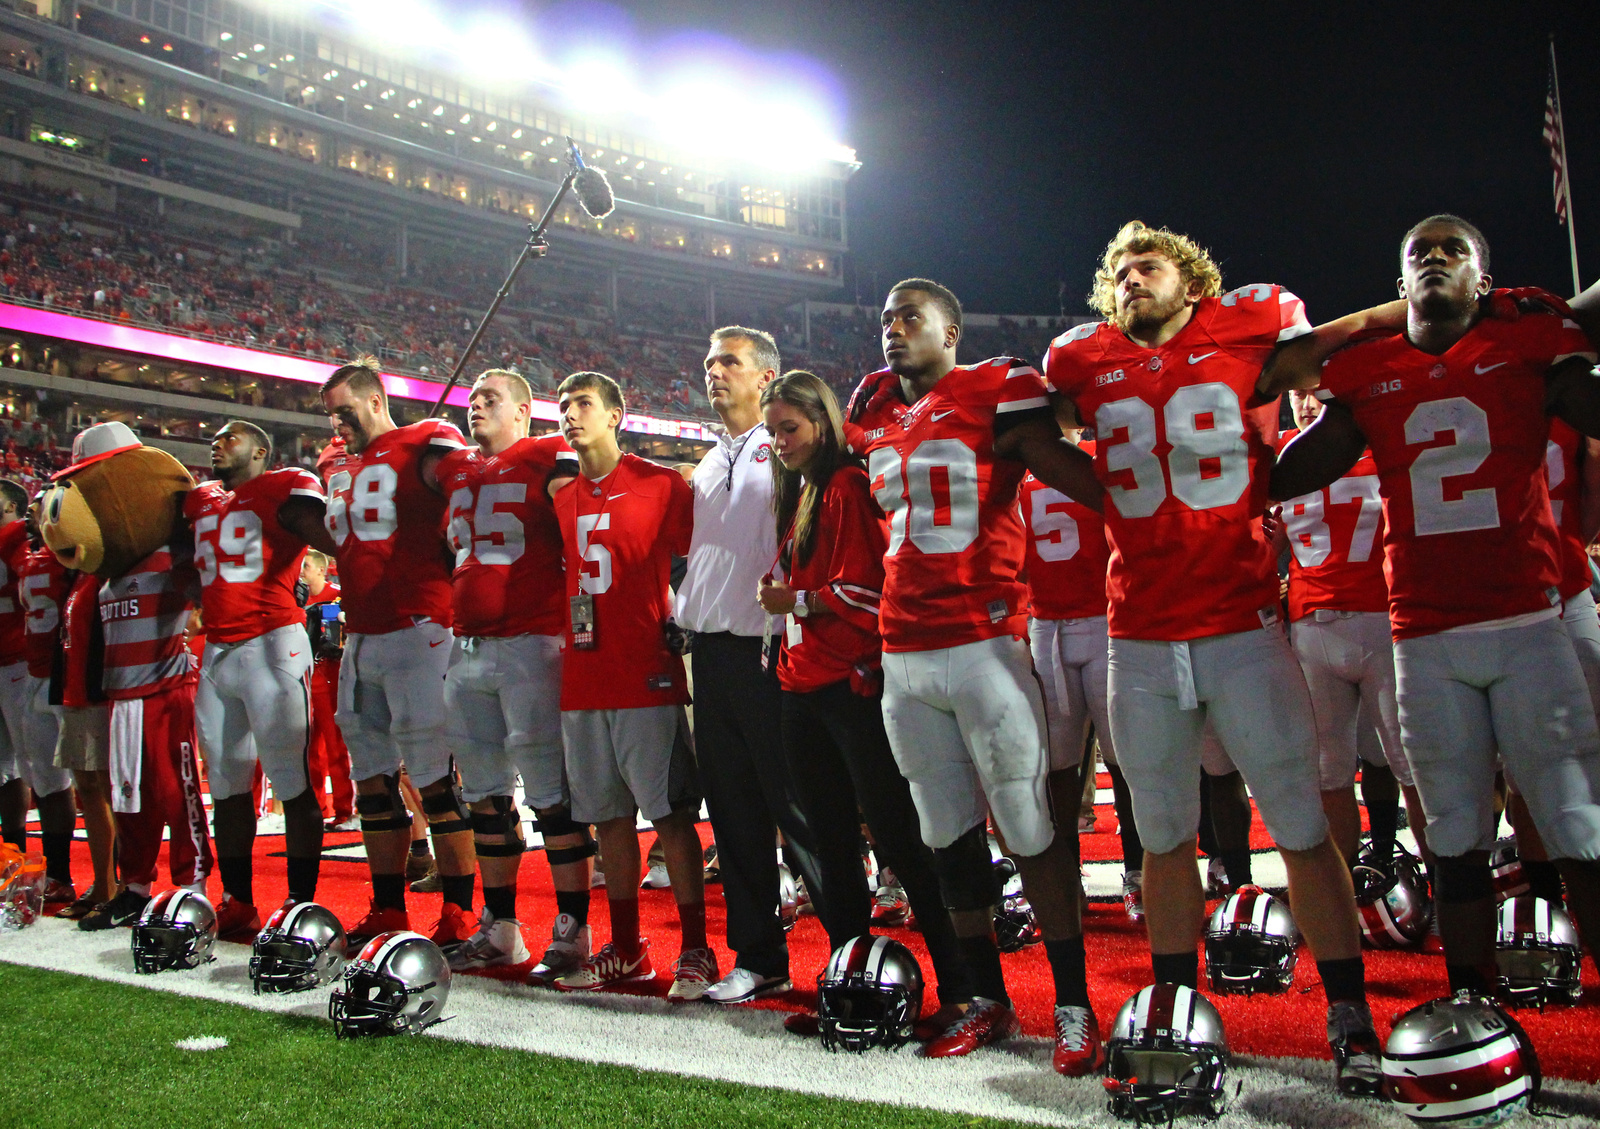 Ohio State Hurt But Encouraged After Loss To Virginia Tech The